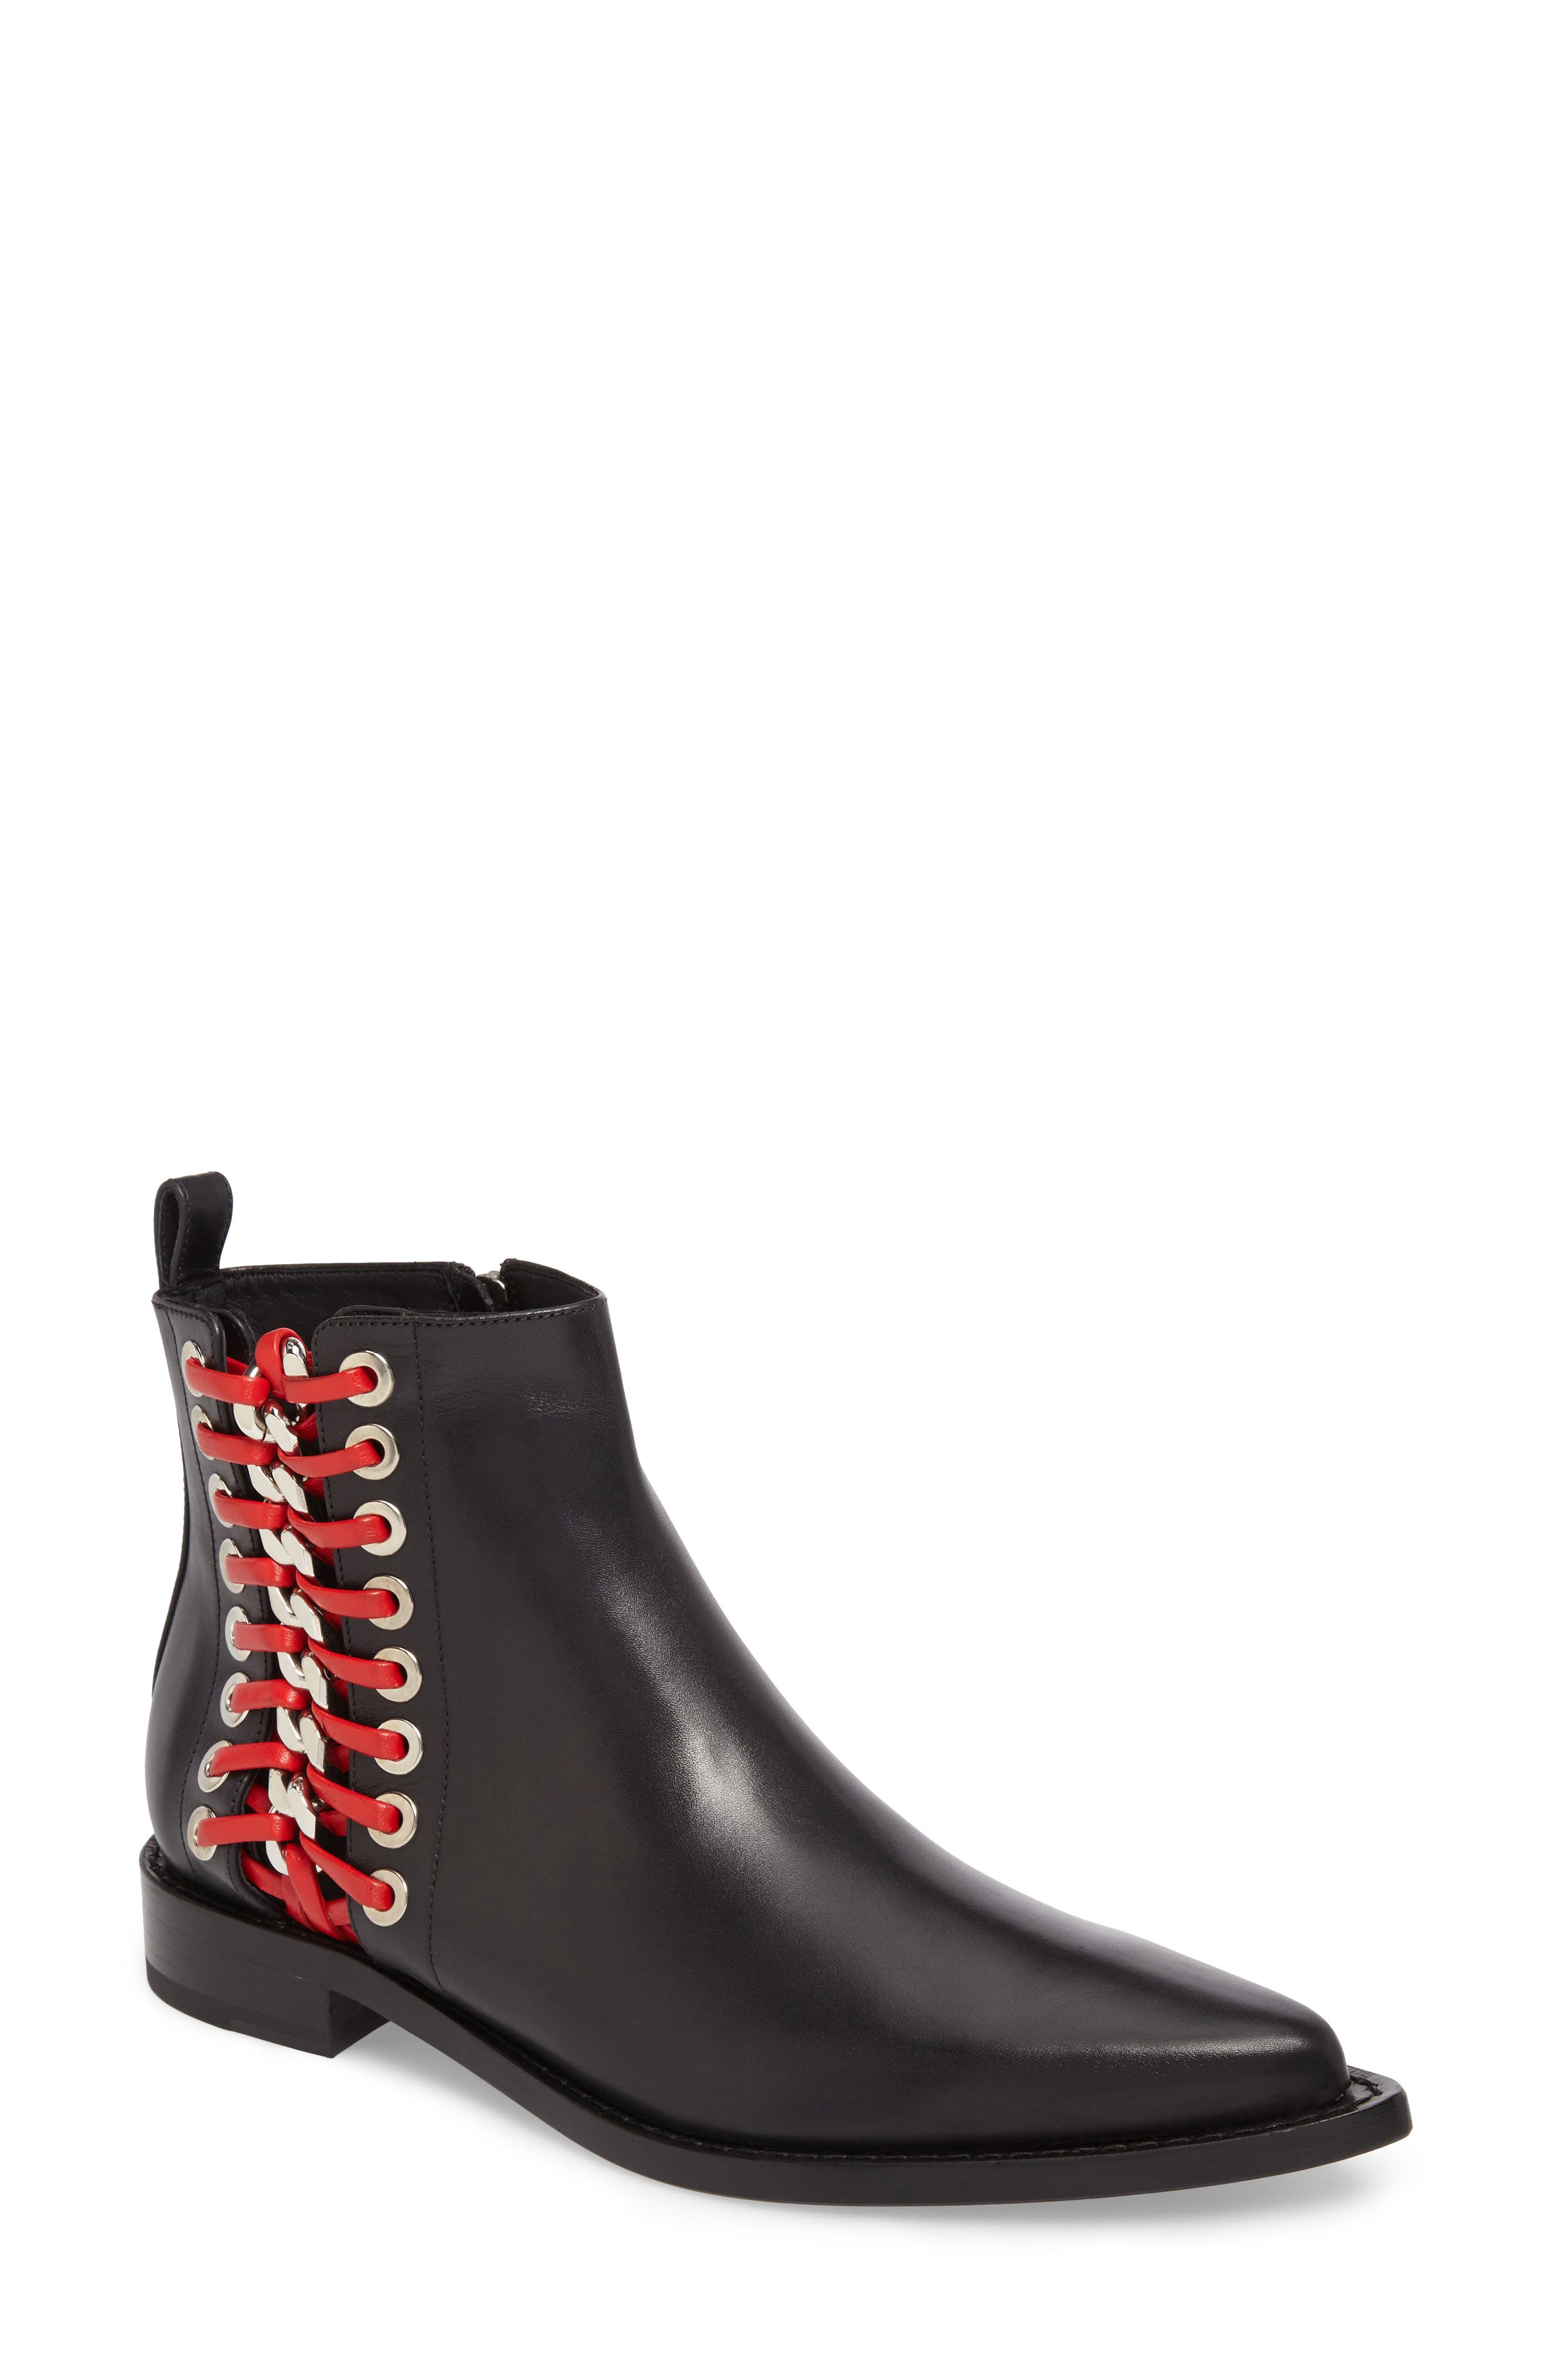 Main Image - Alexander McQueen Laced Chain Pointy Toe Boot (Women)